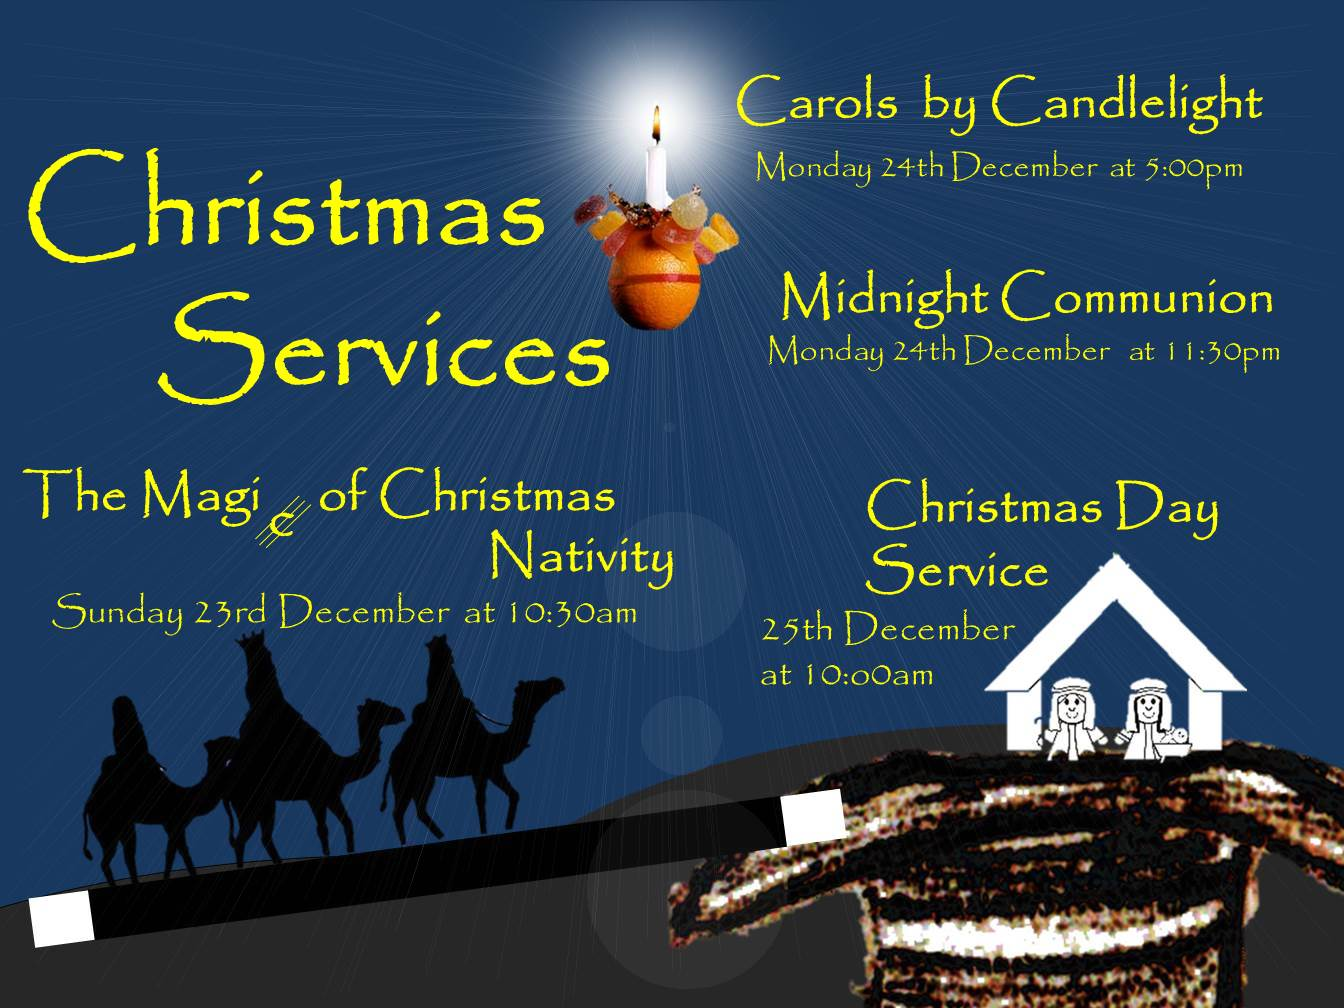 Nativity Service: The Junior Church and Rev Matthew Fugill @ Beeston | United Kingdom